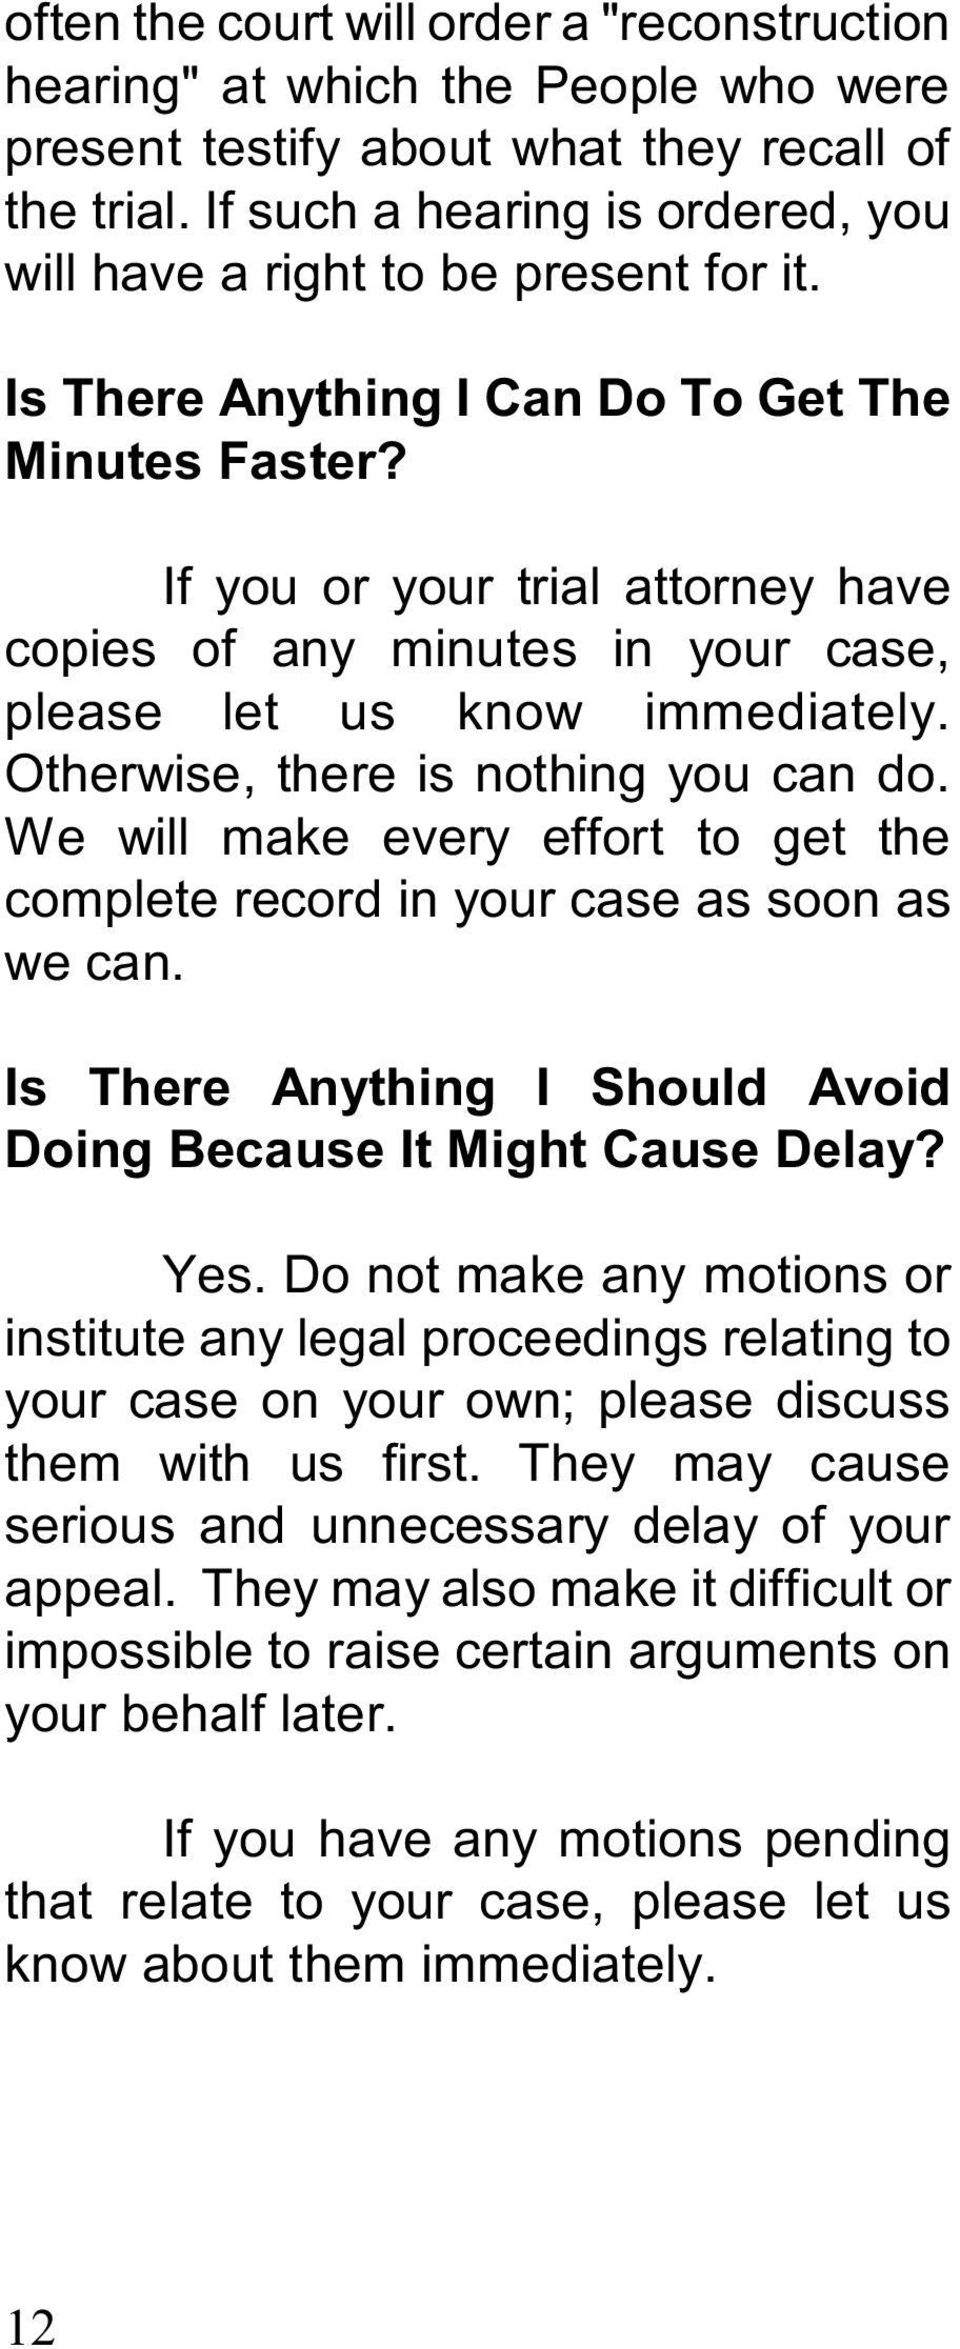 If you or your trial attorney have copies of any minutes in your case, please let us know immediately. Otherwise, there is nothing you can do.